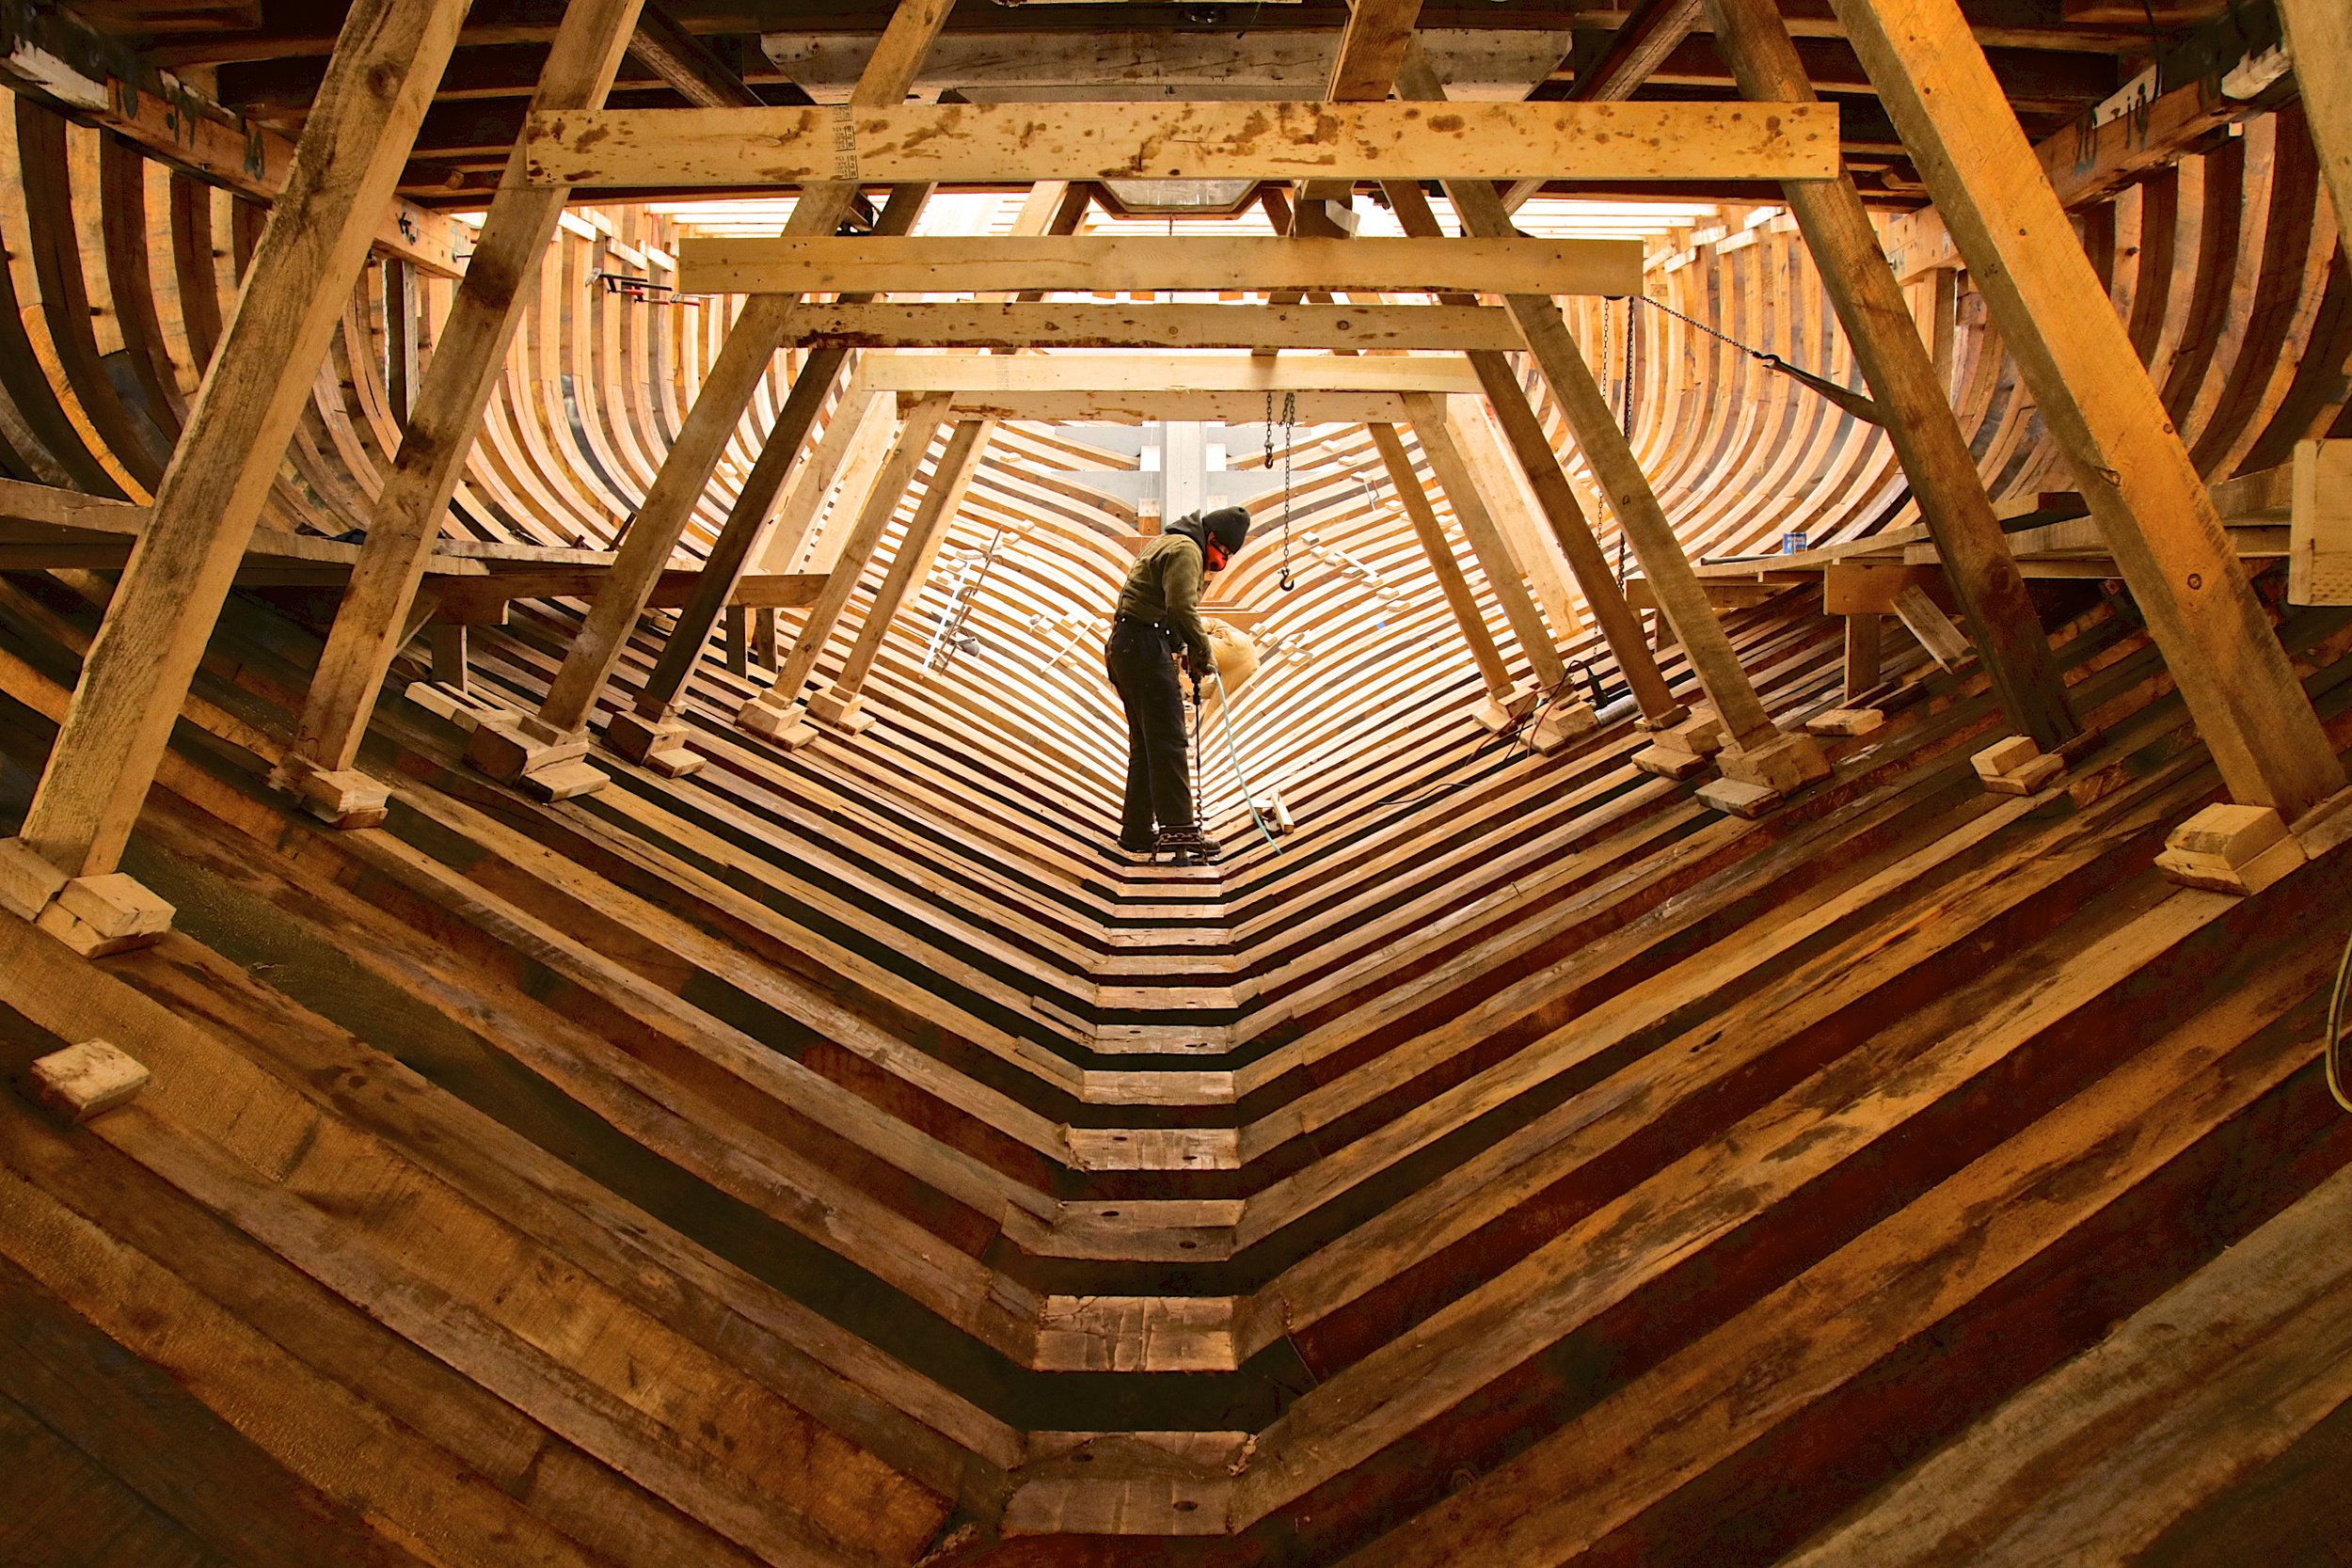 May: Ernestina-Morrissey, The Shipyard In Boothbay Harbor.